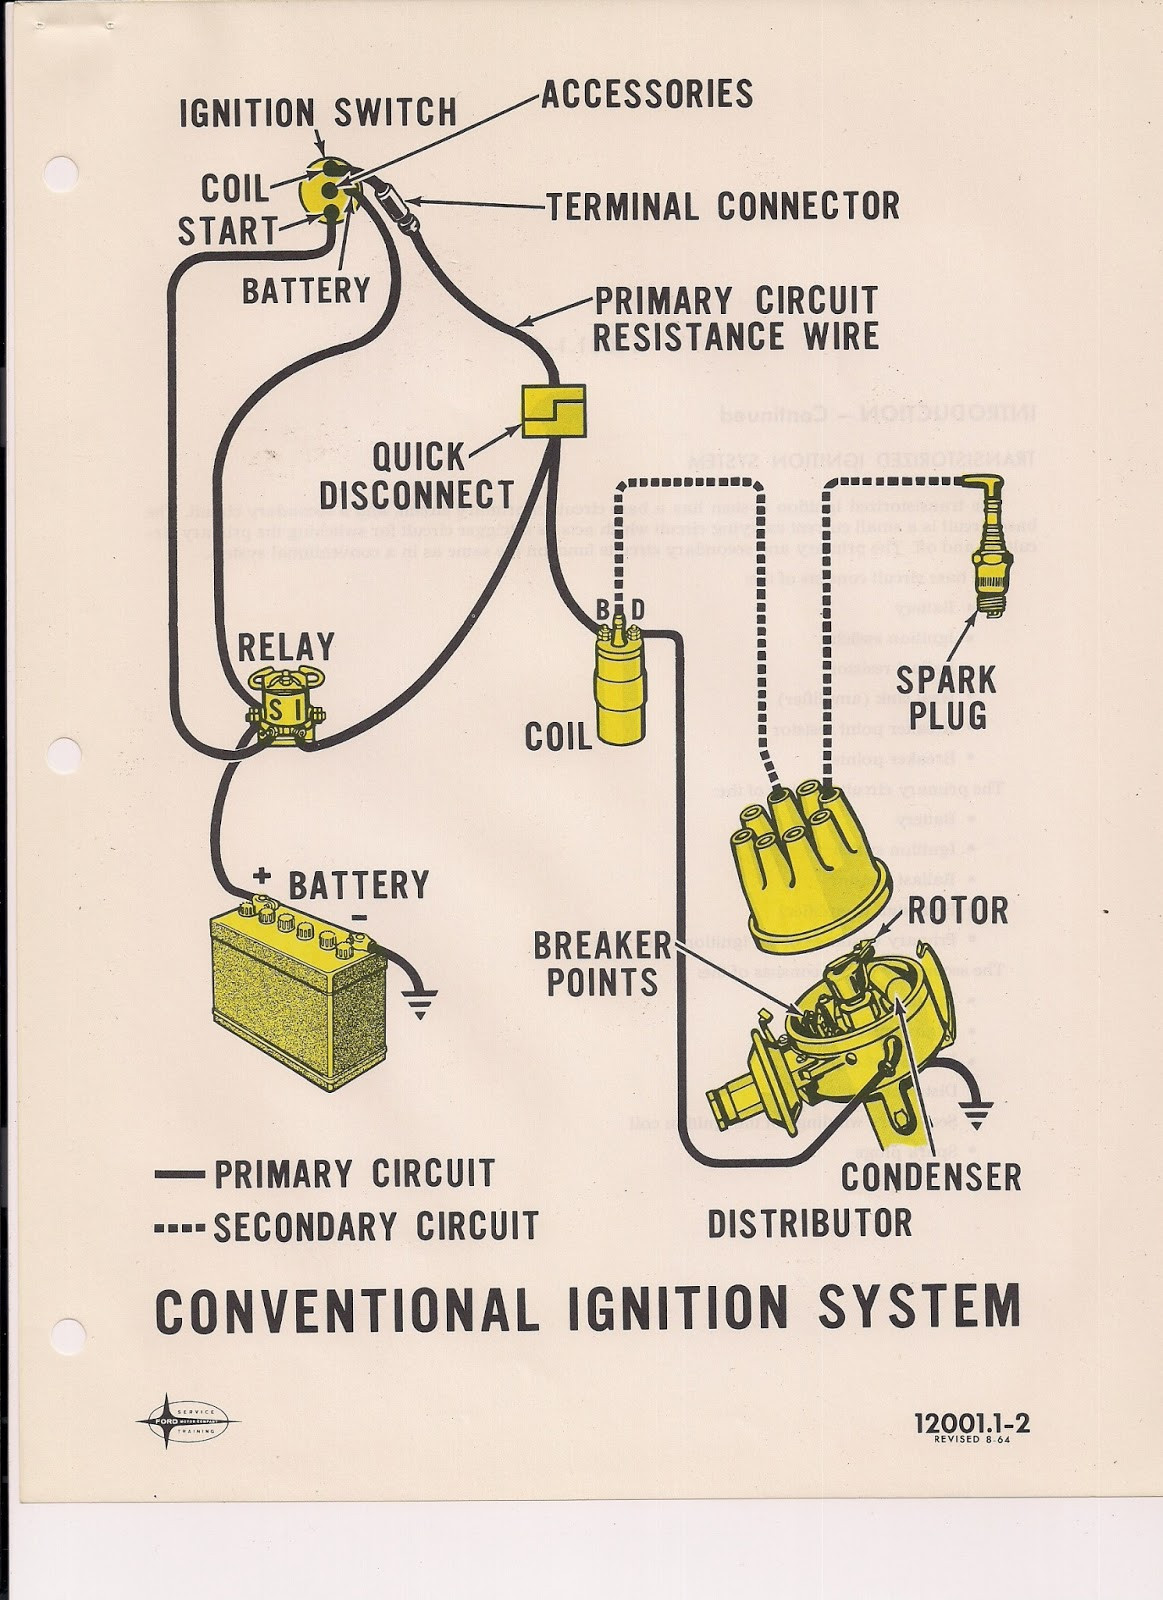 1969 mustang ignition wiring diagram nd 9305  1969 mustang distributor wiring diagram free diagram  1969 mustang distributor wiring diagram